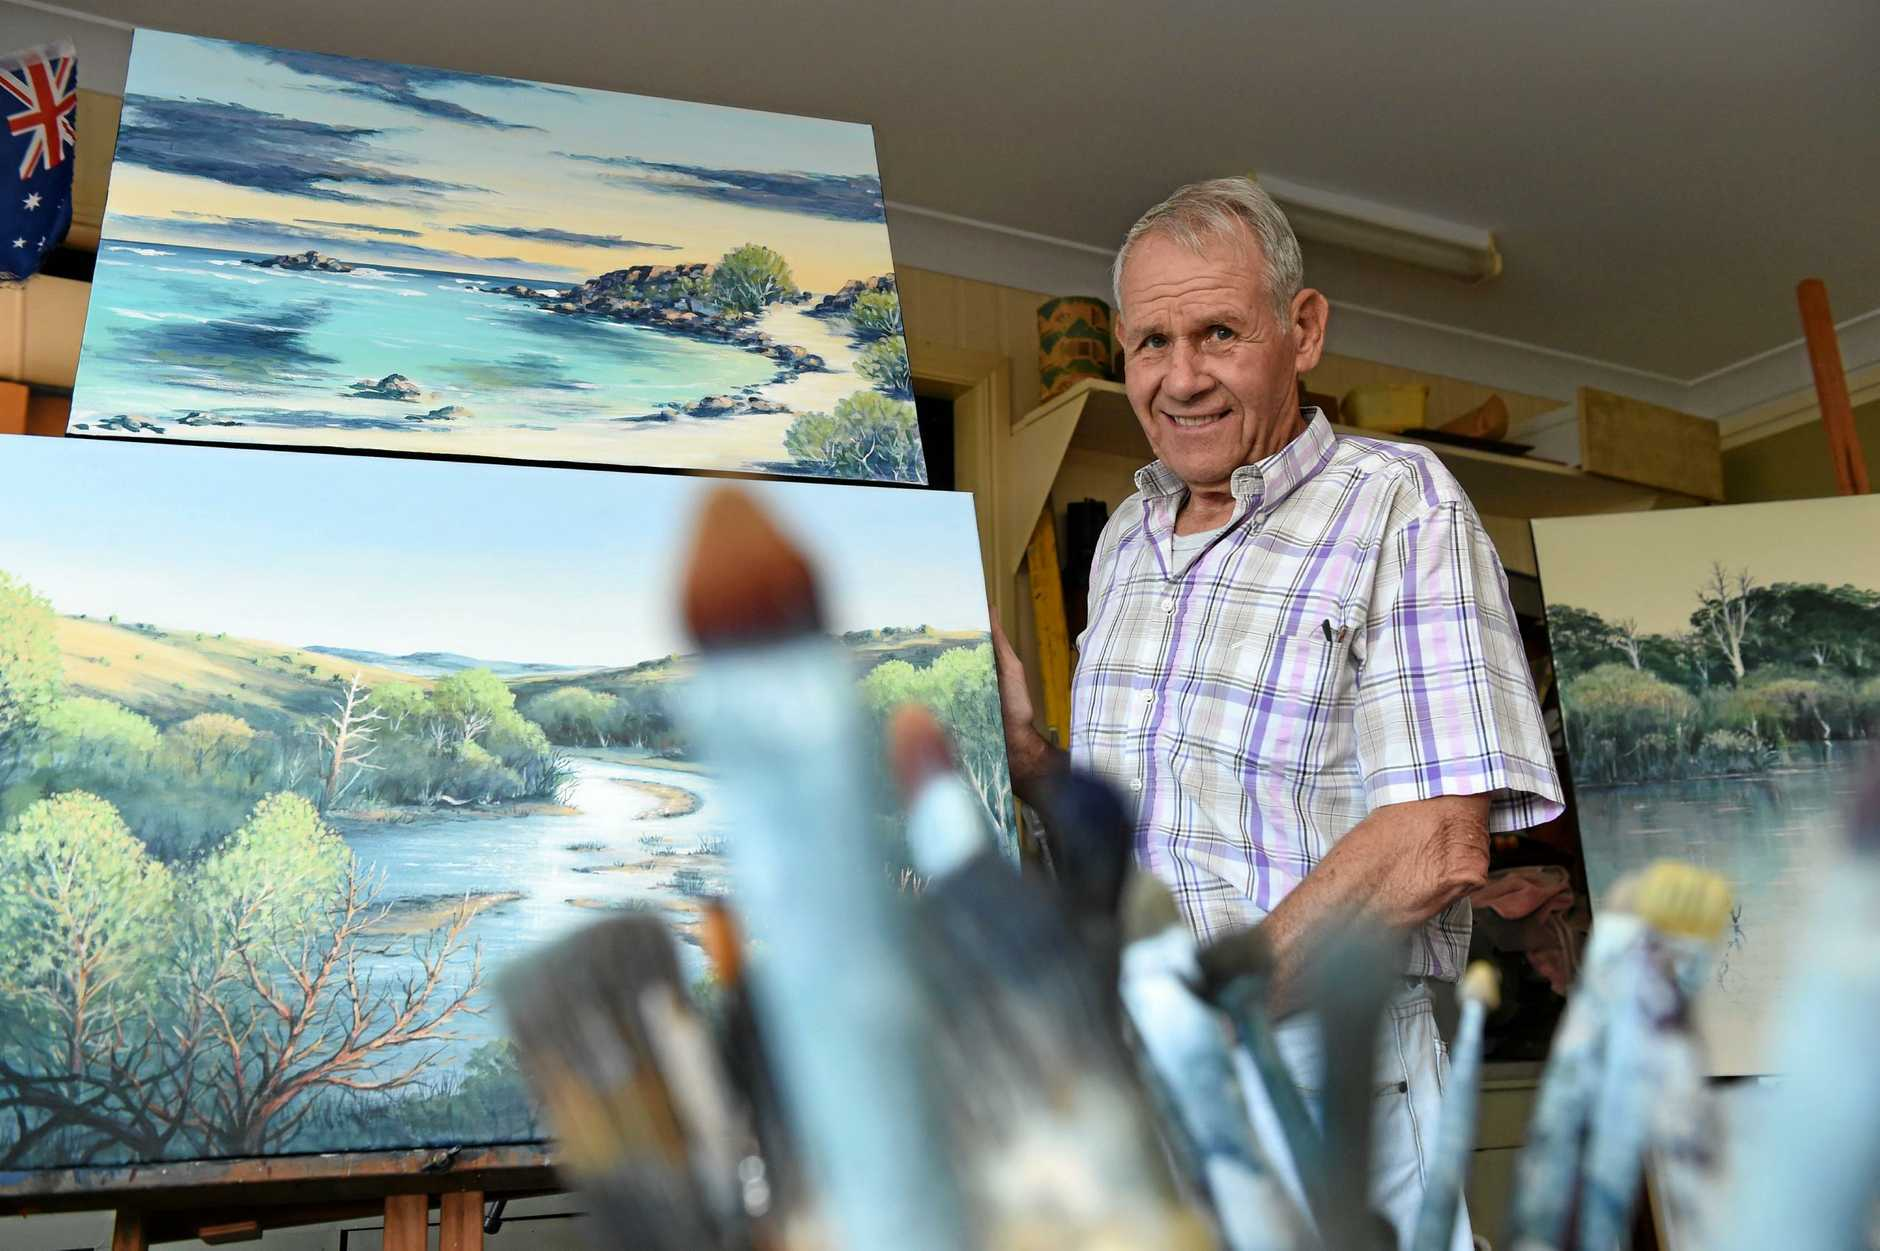 Story of - 77 year old Rolf Sieber showcasing some of his award winning artwork.